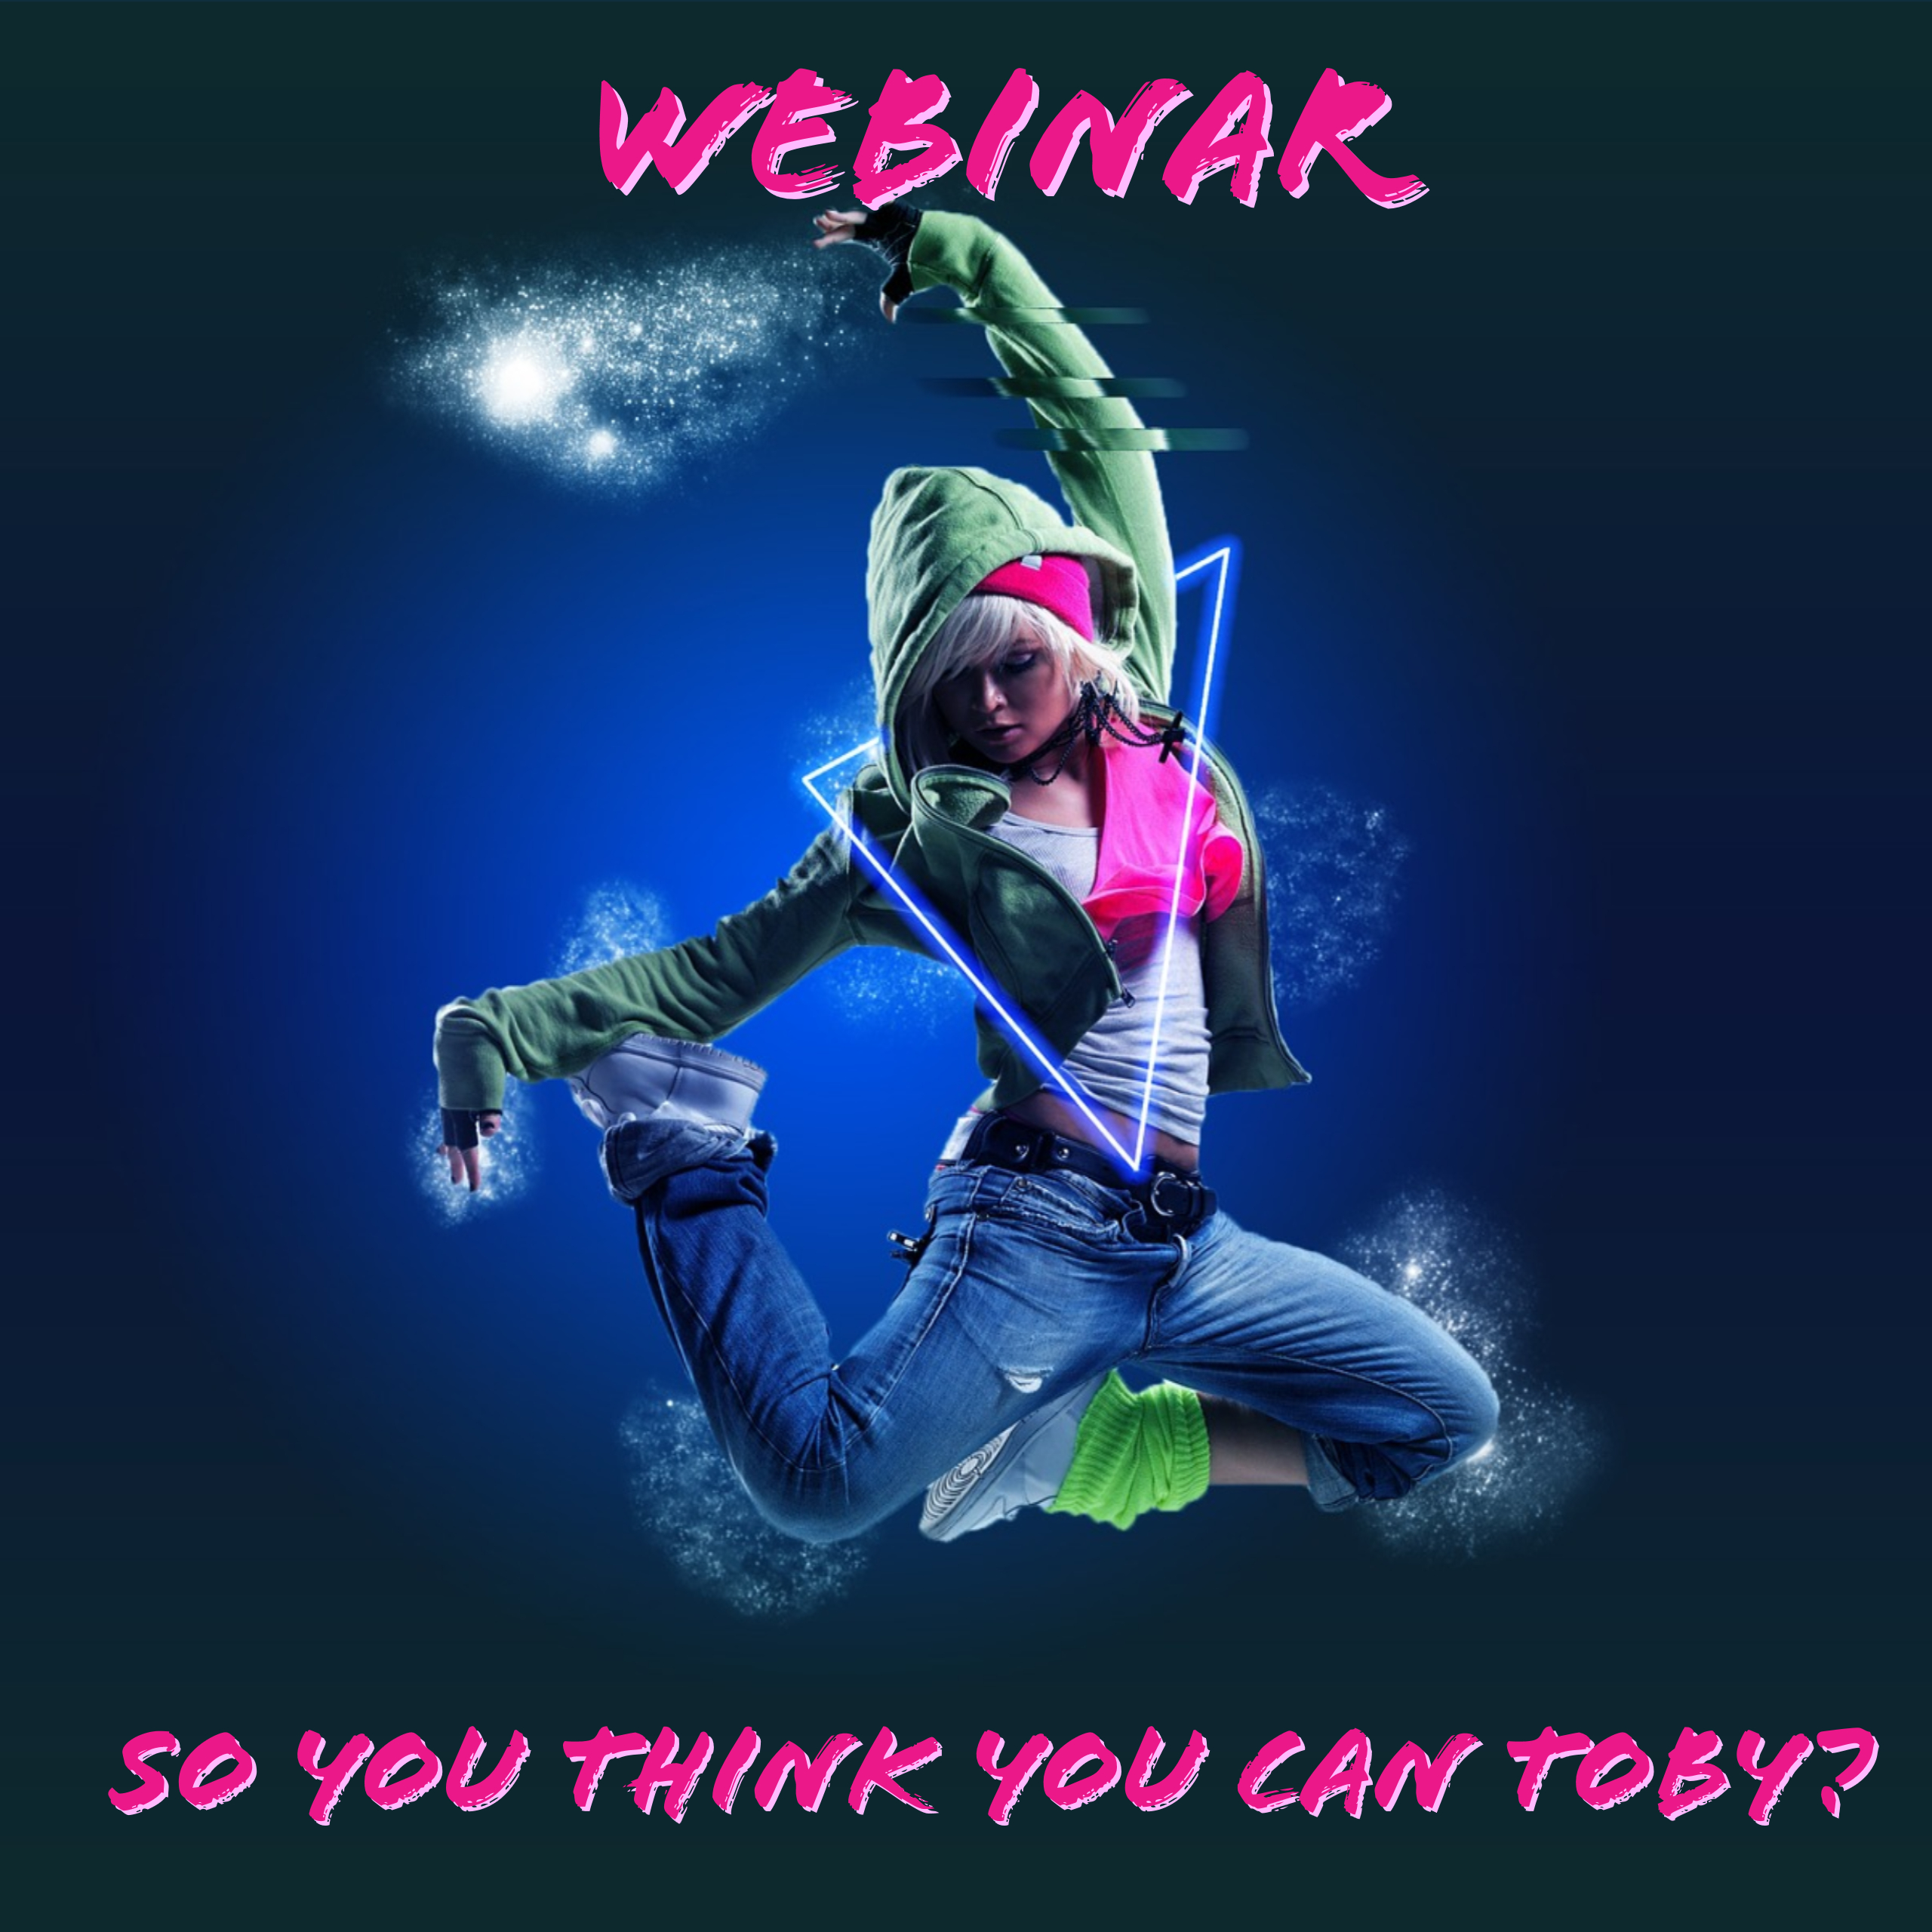 WEBINAR - So You Think You Can TOBY?